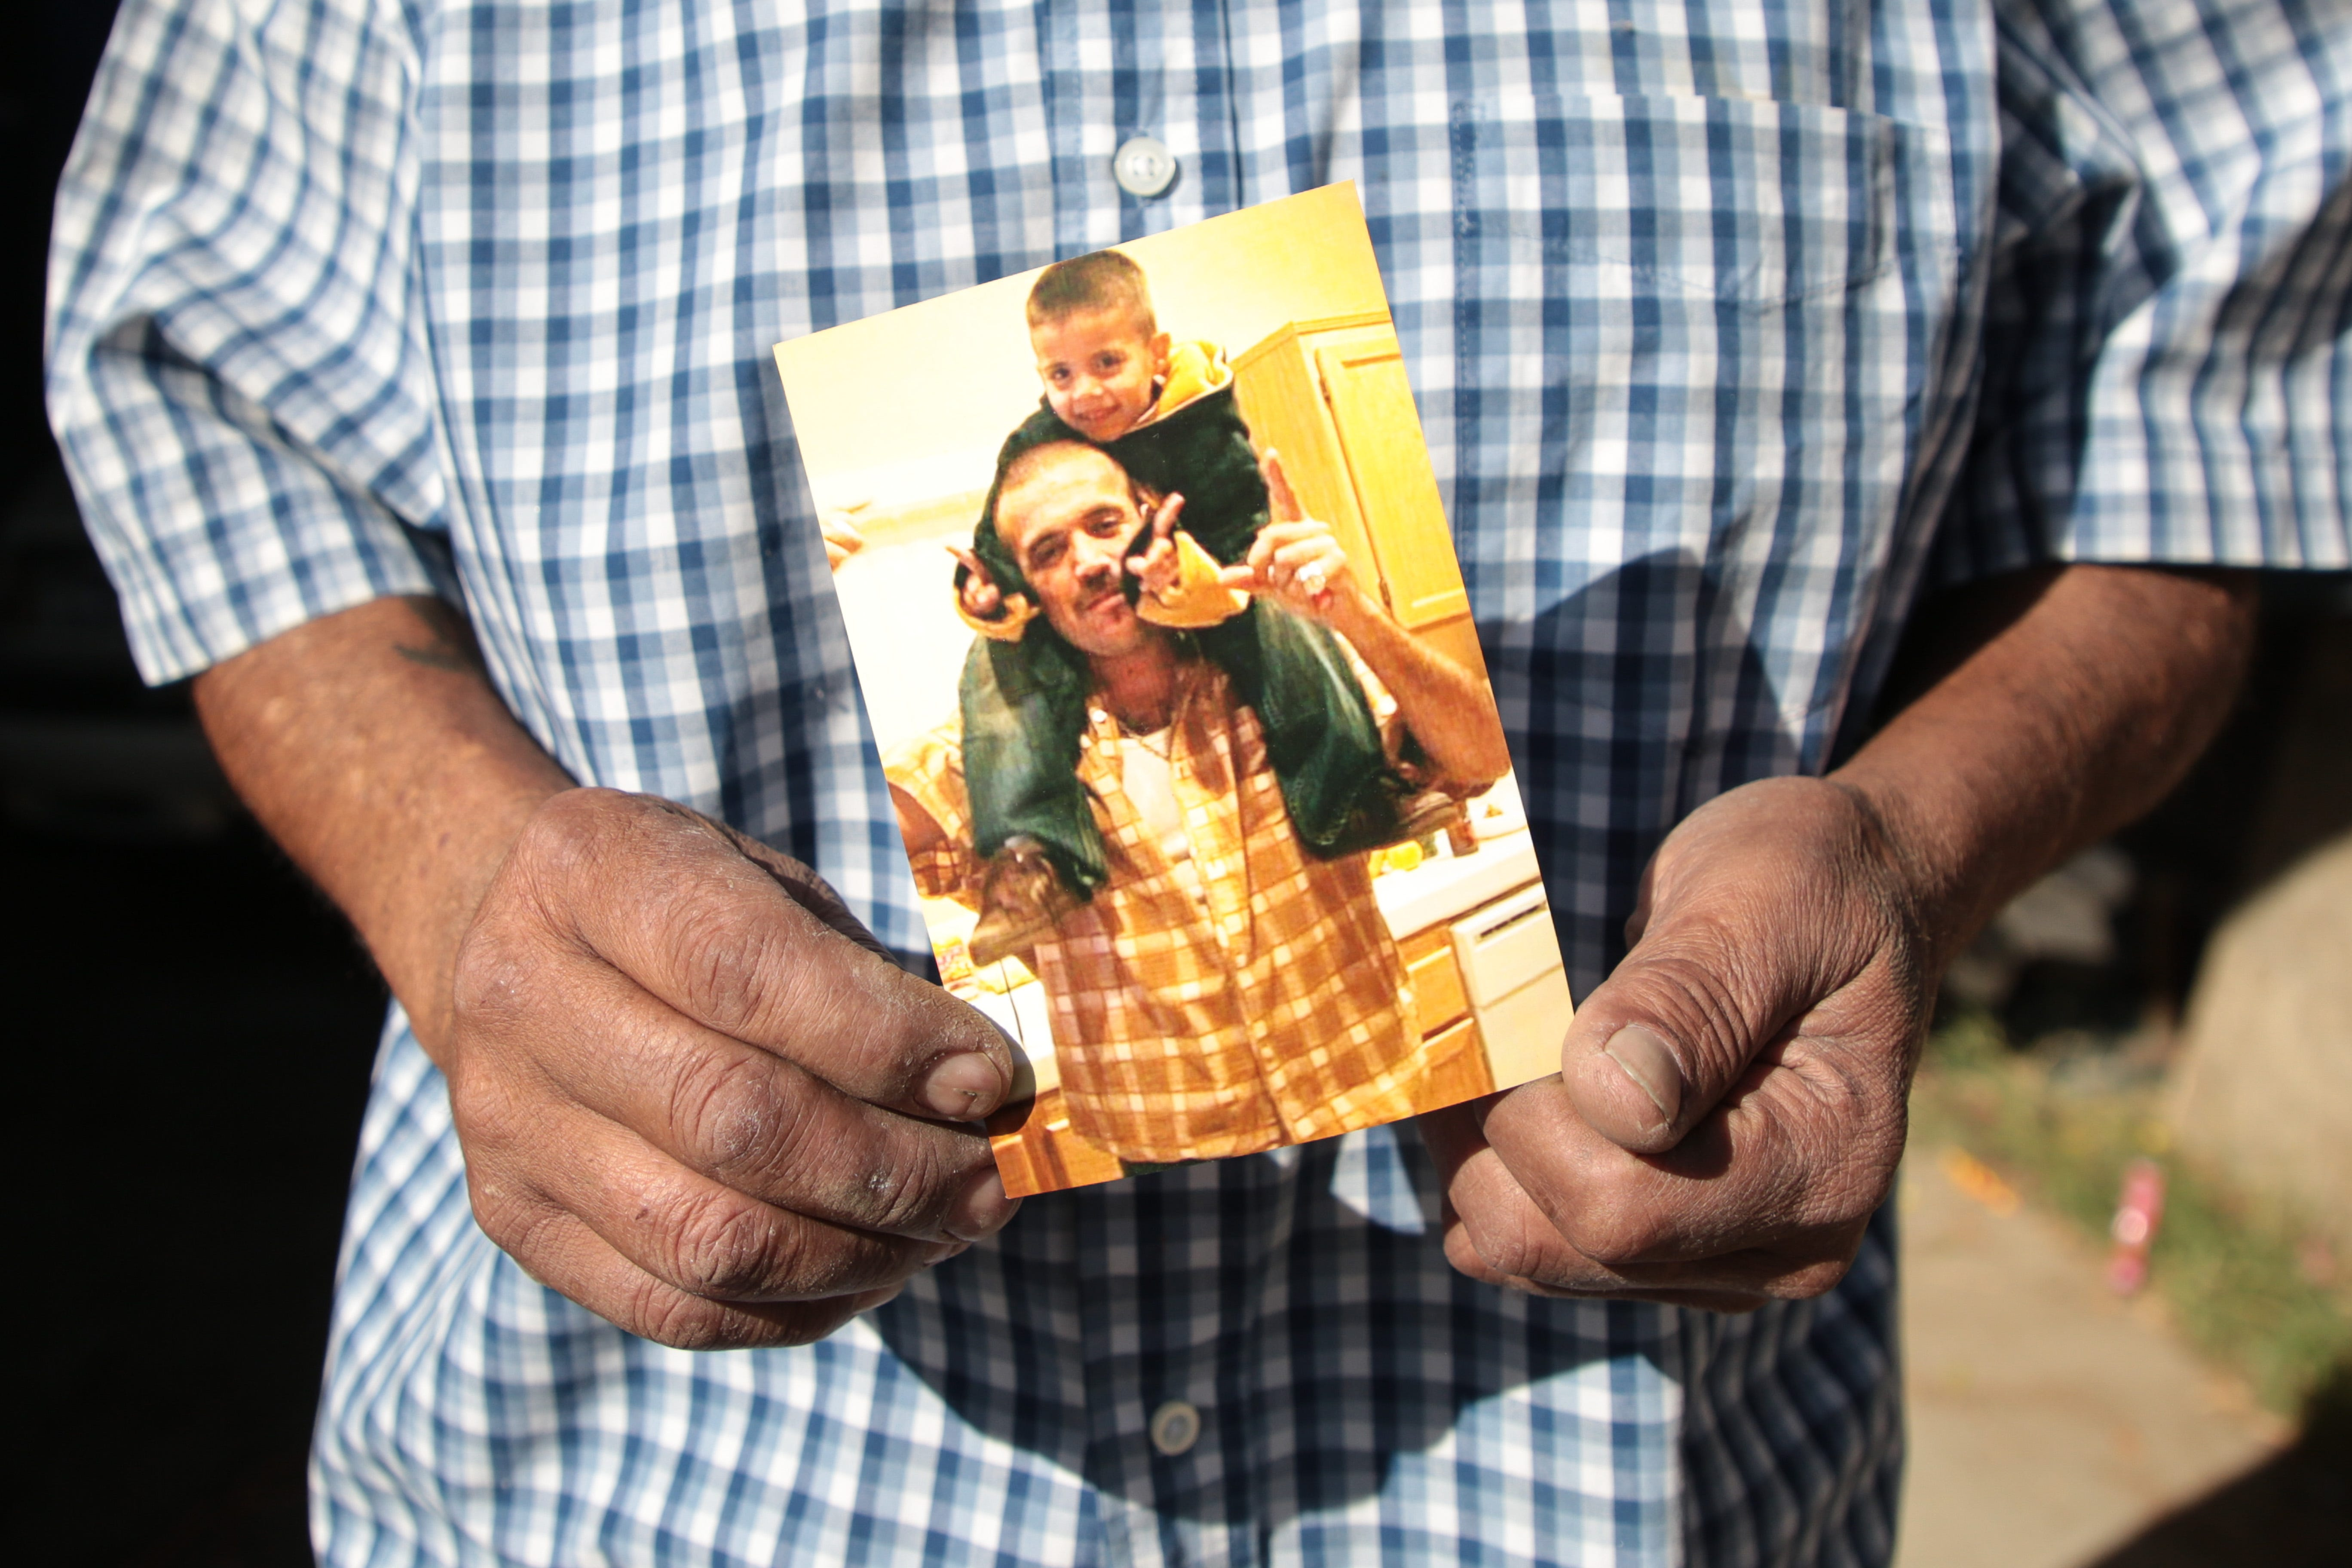 Luis Carlos Morin Sr. holds a photo of his son, Luis Carlos Morin Jr., and his grandson at his home in Coachella, on Feb. 25, 2021. Former Riverside County Sheriff's Deputy Oscar Rodriguez is accused of fatally shooting Luis Morin Jr. in 2014.